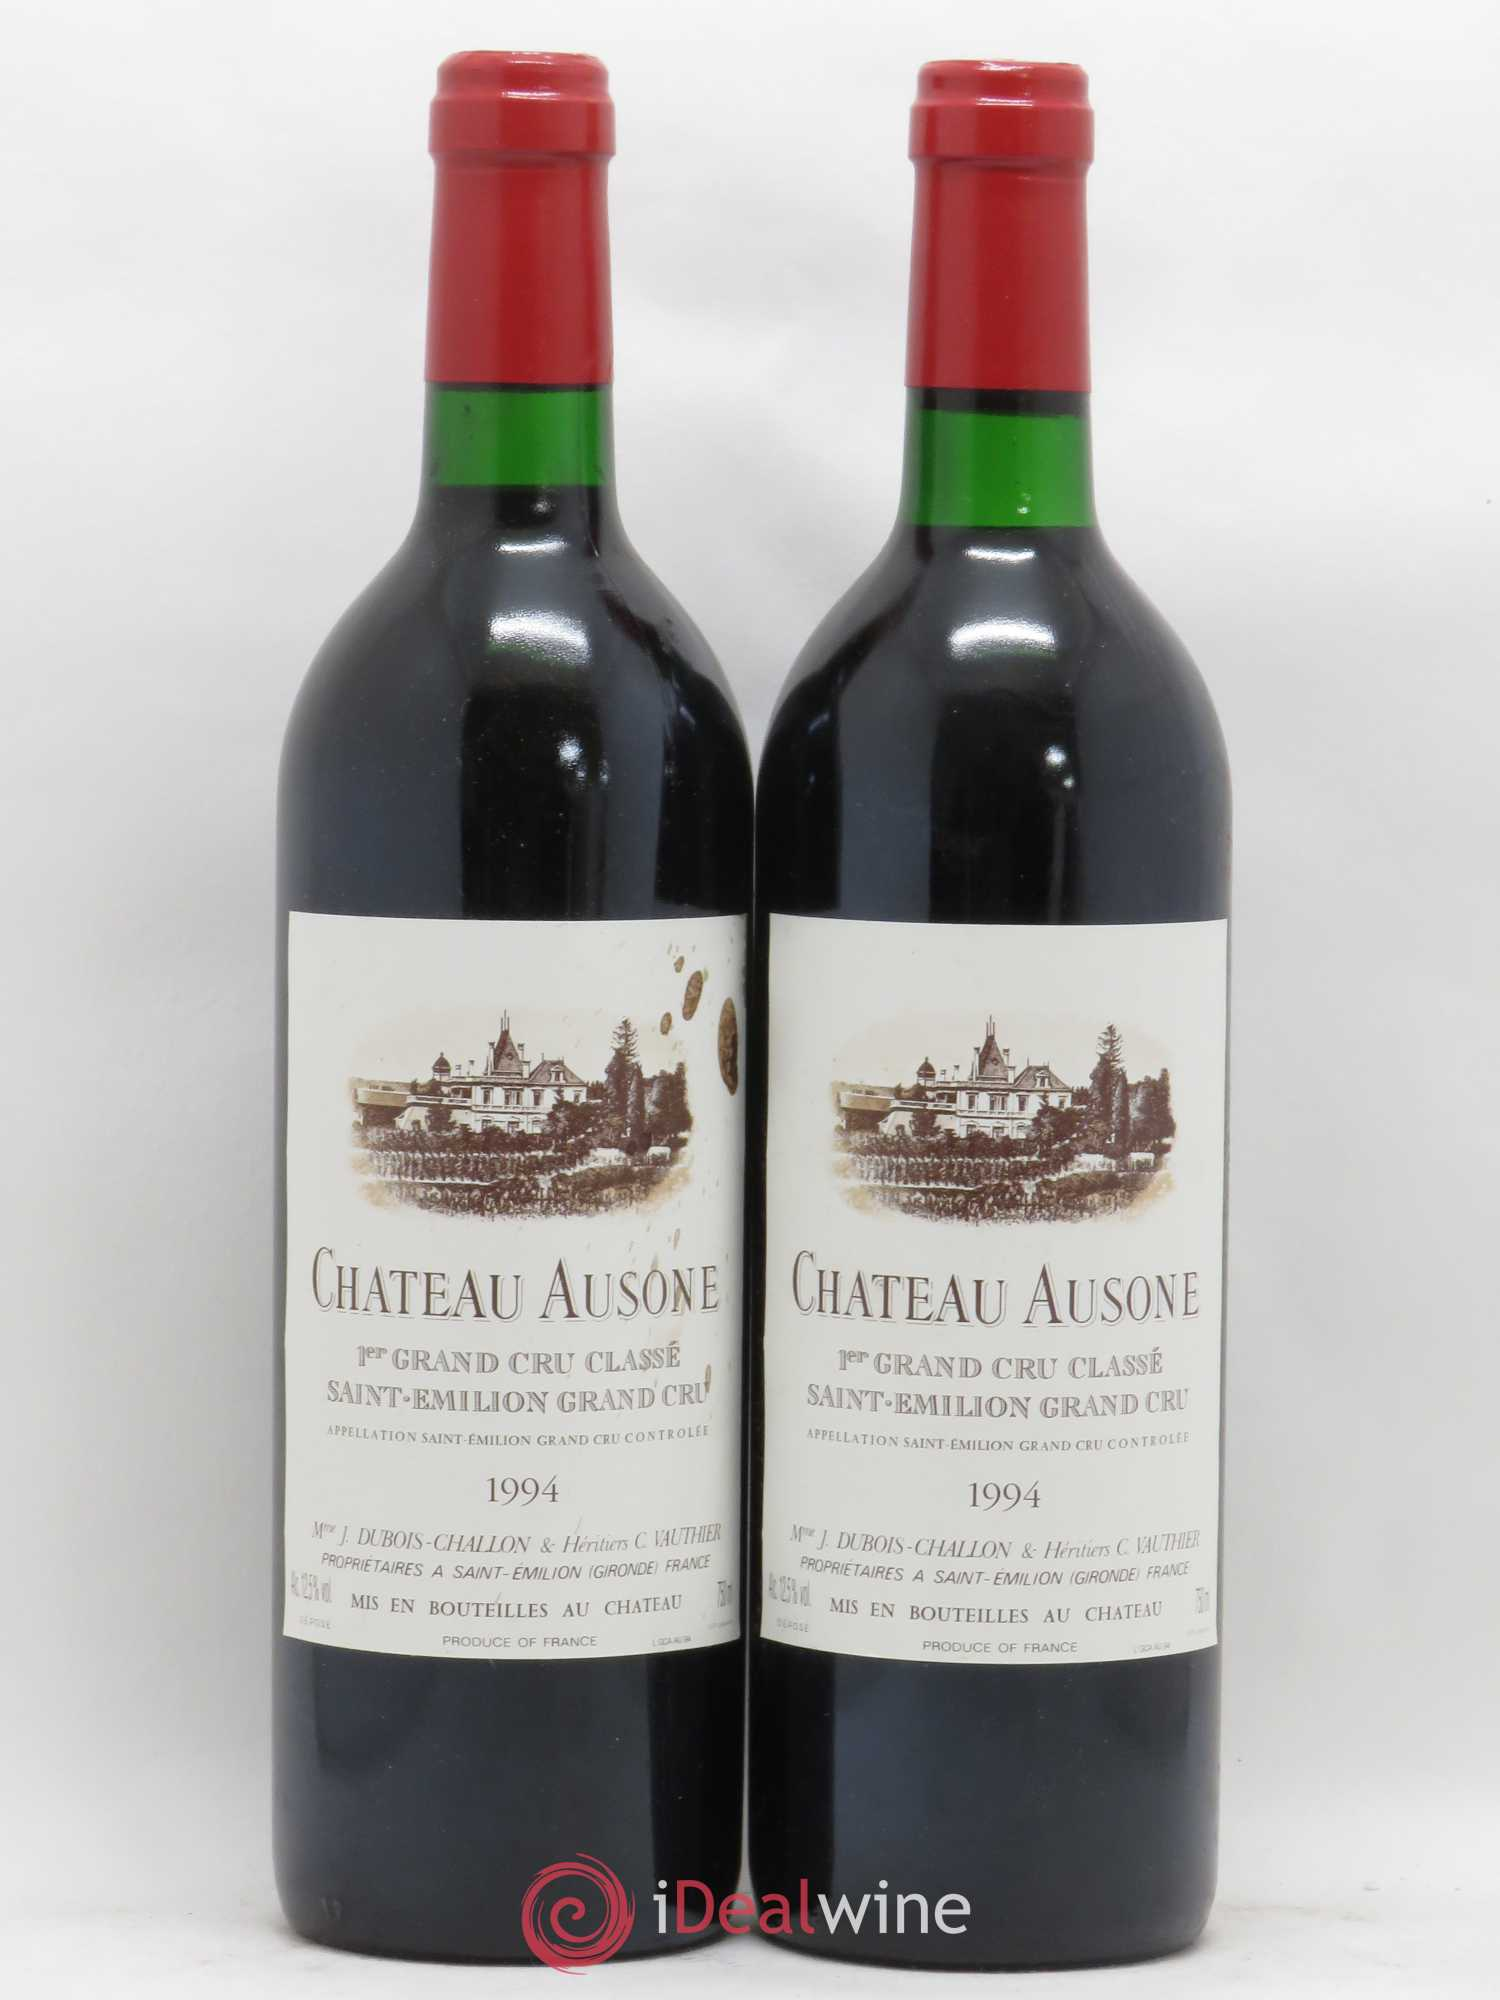 Château Ausone 1er Grand Cru Classé A  1994 - Lot of 2 Bottles